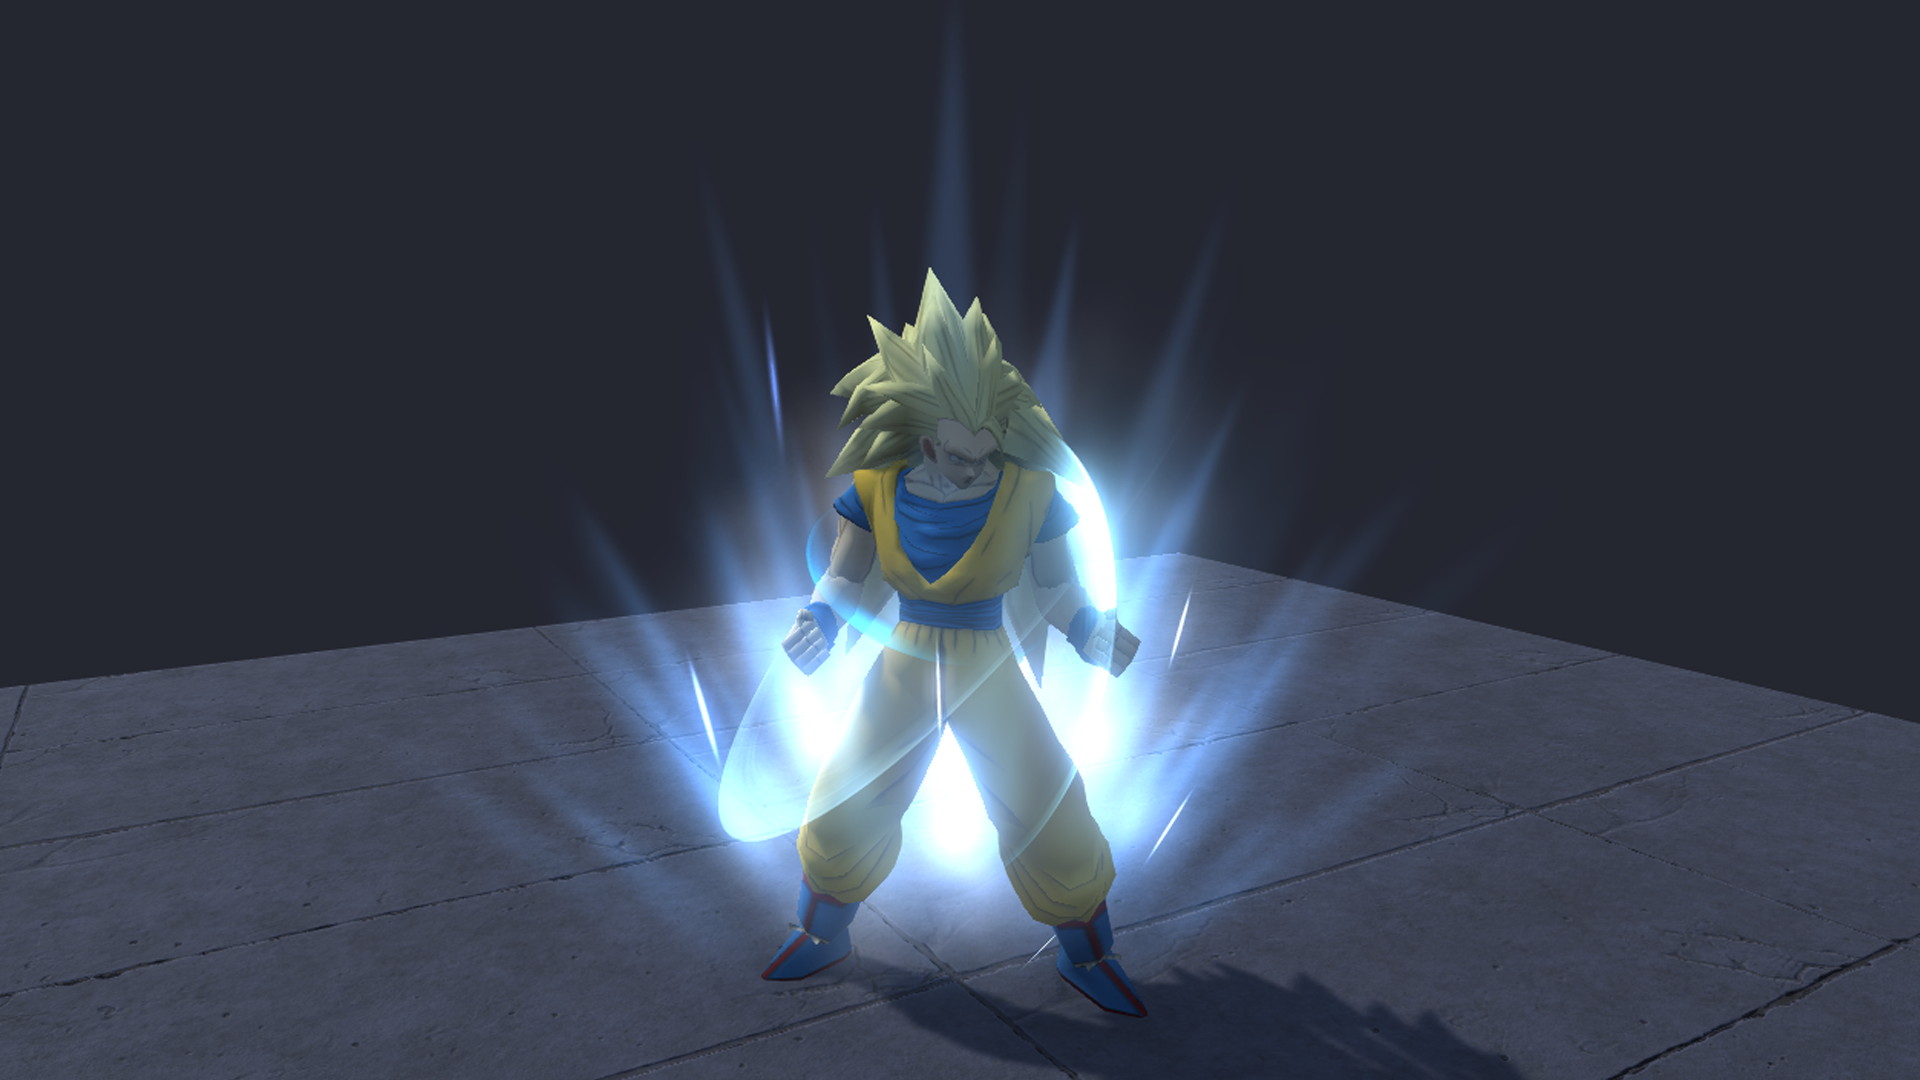 Guide how to create super Saiyan aura/charge up in Unity 2018.1